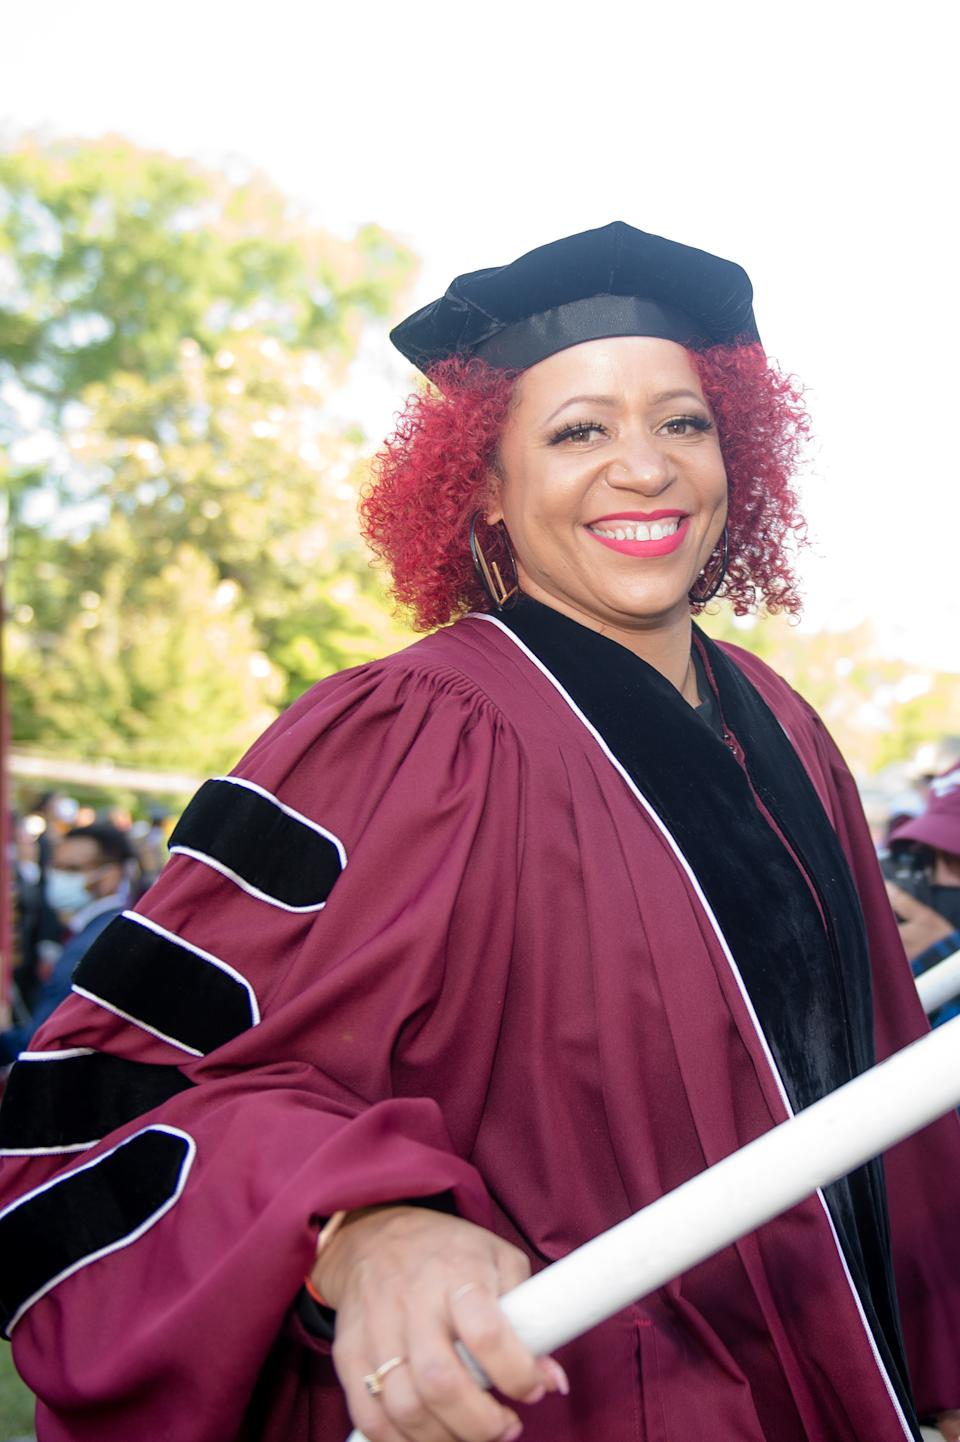 ATLANTA, GEORGIA - MAY 16: Author Nikole Hannah-Jones attends the 137th Commencement at Morehouse College on May 16, 2021 in Atlanta, Georgia. (Photo by Marcus Ingram/Getty Images)